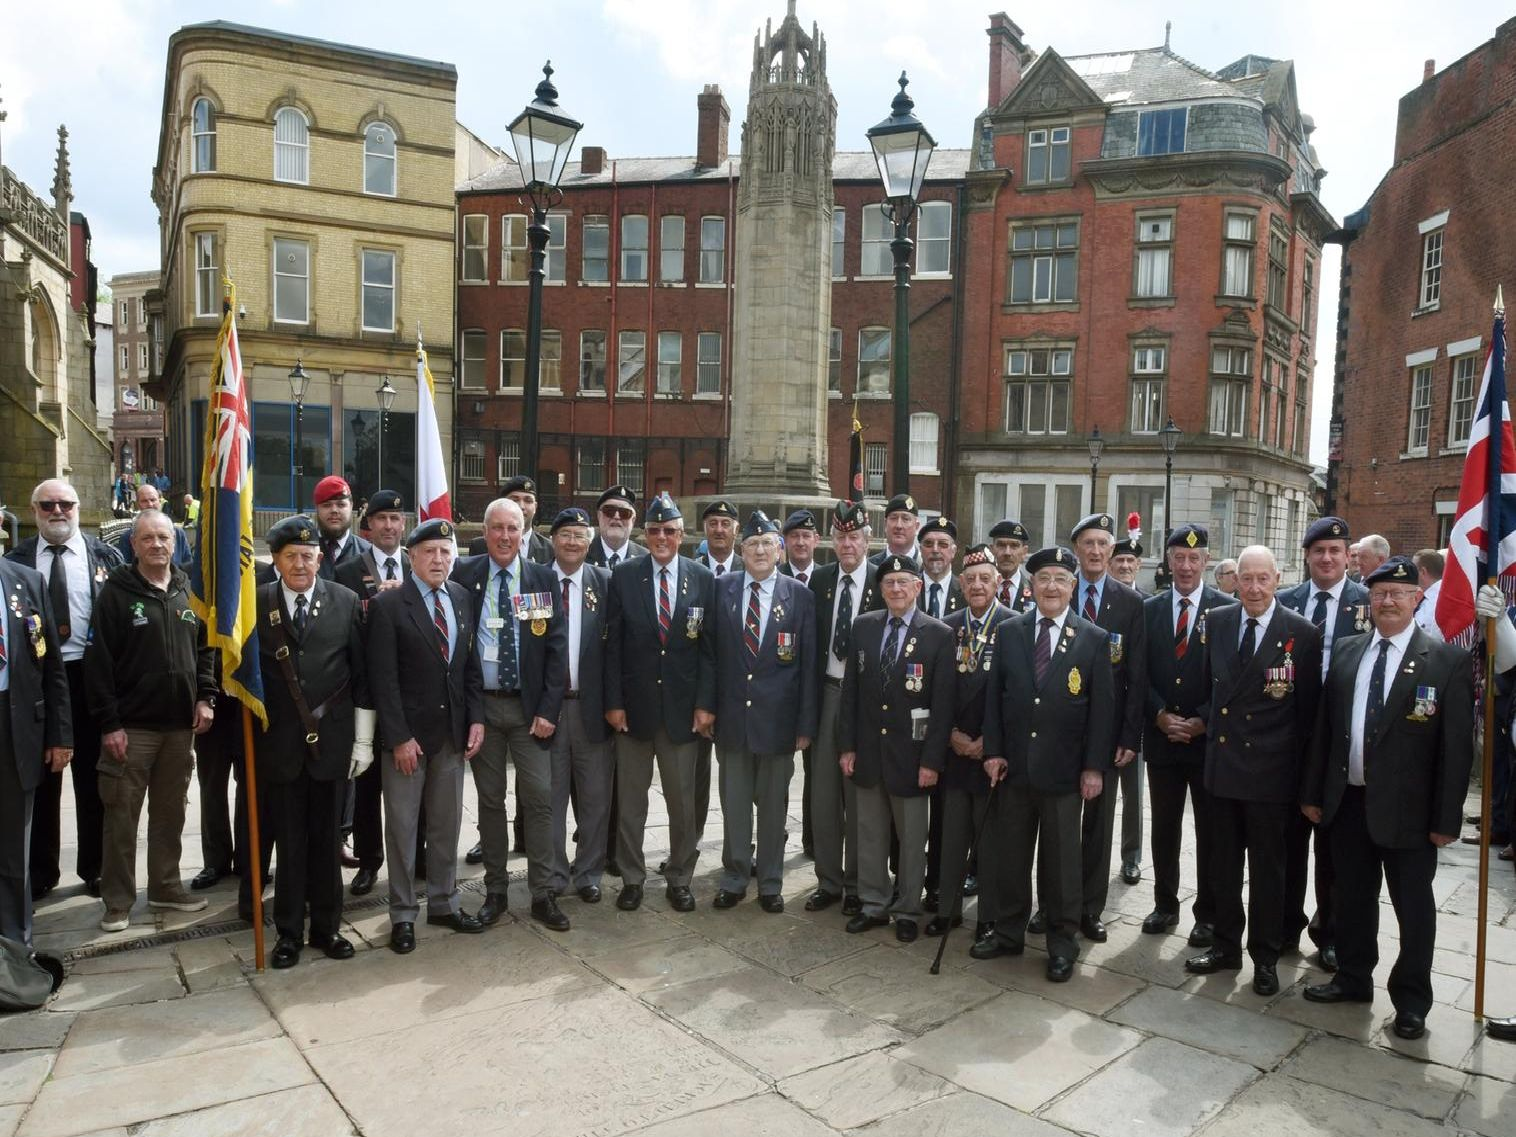 Wigan came together to remember the extraordinary events of D-Day 75 years later